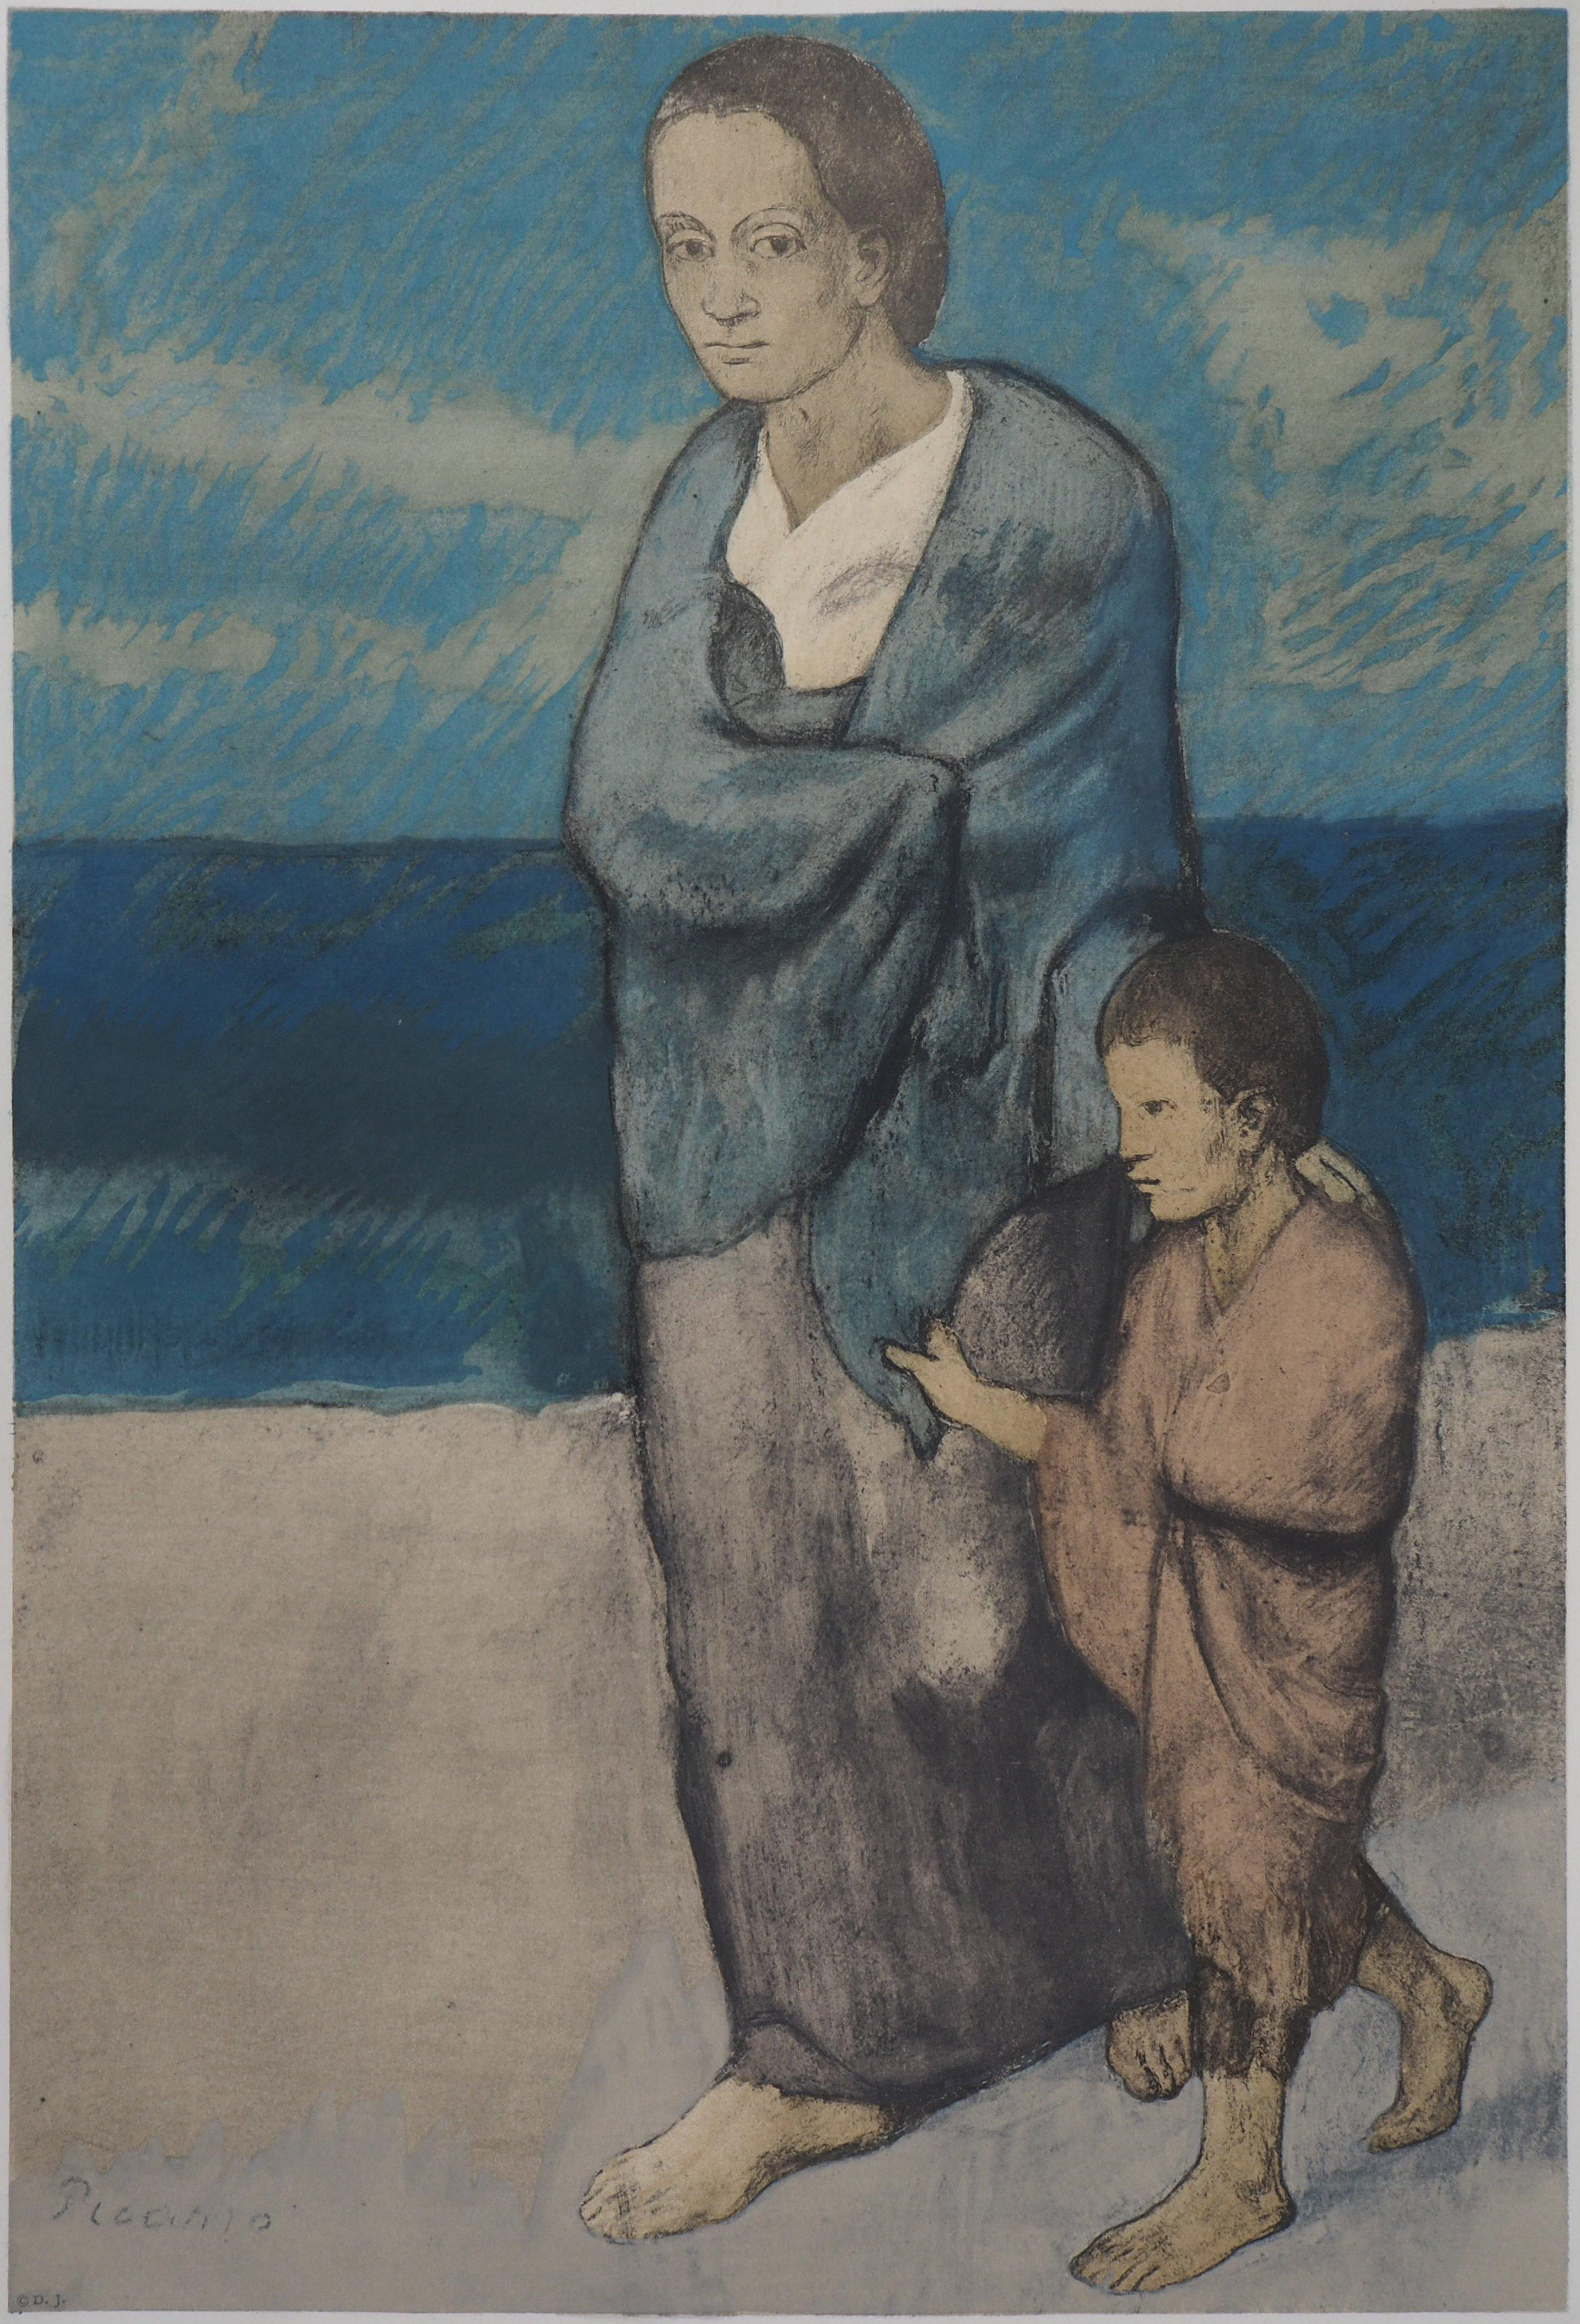 Mother and Child - Lithograph (c. 1950)